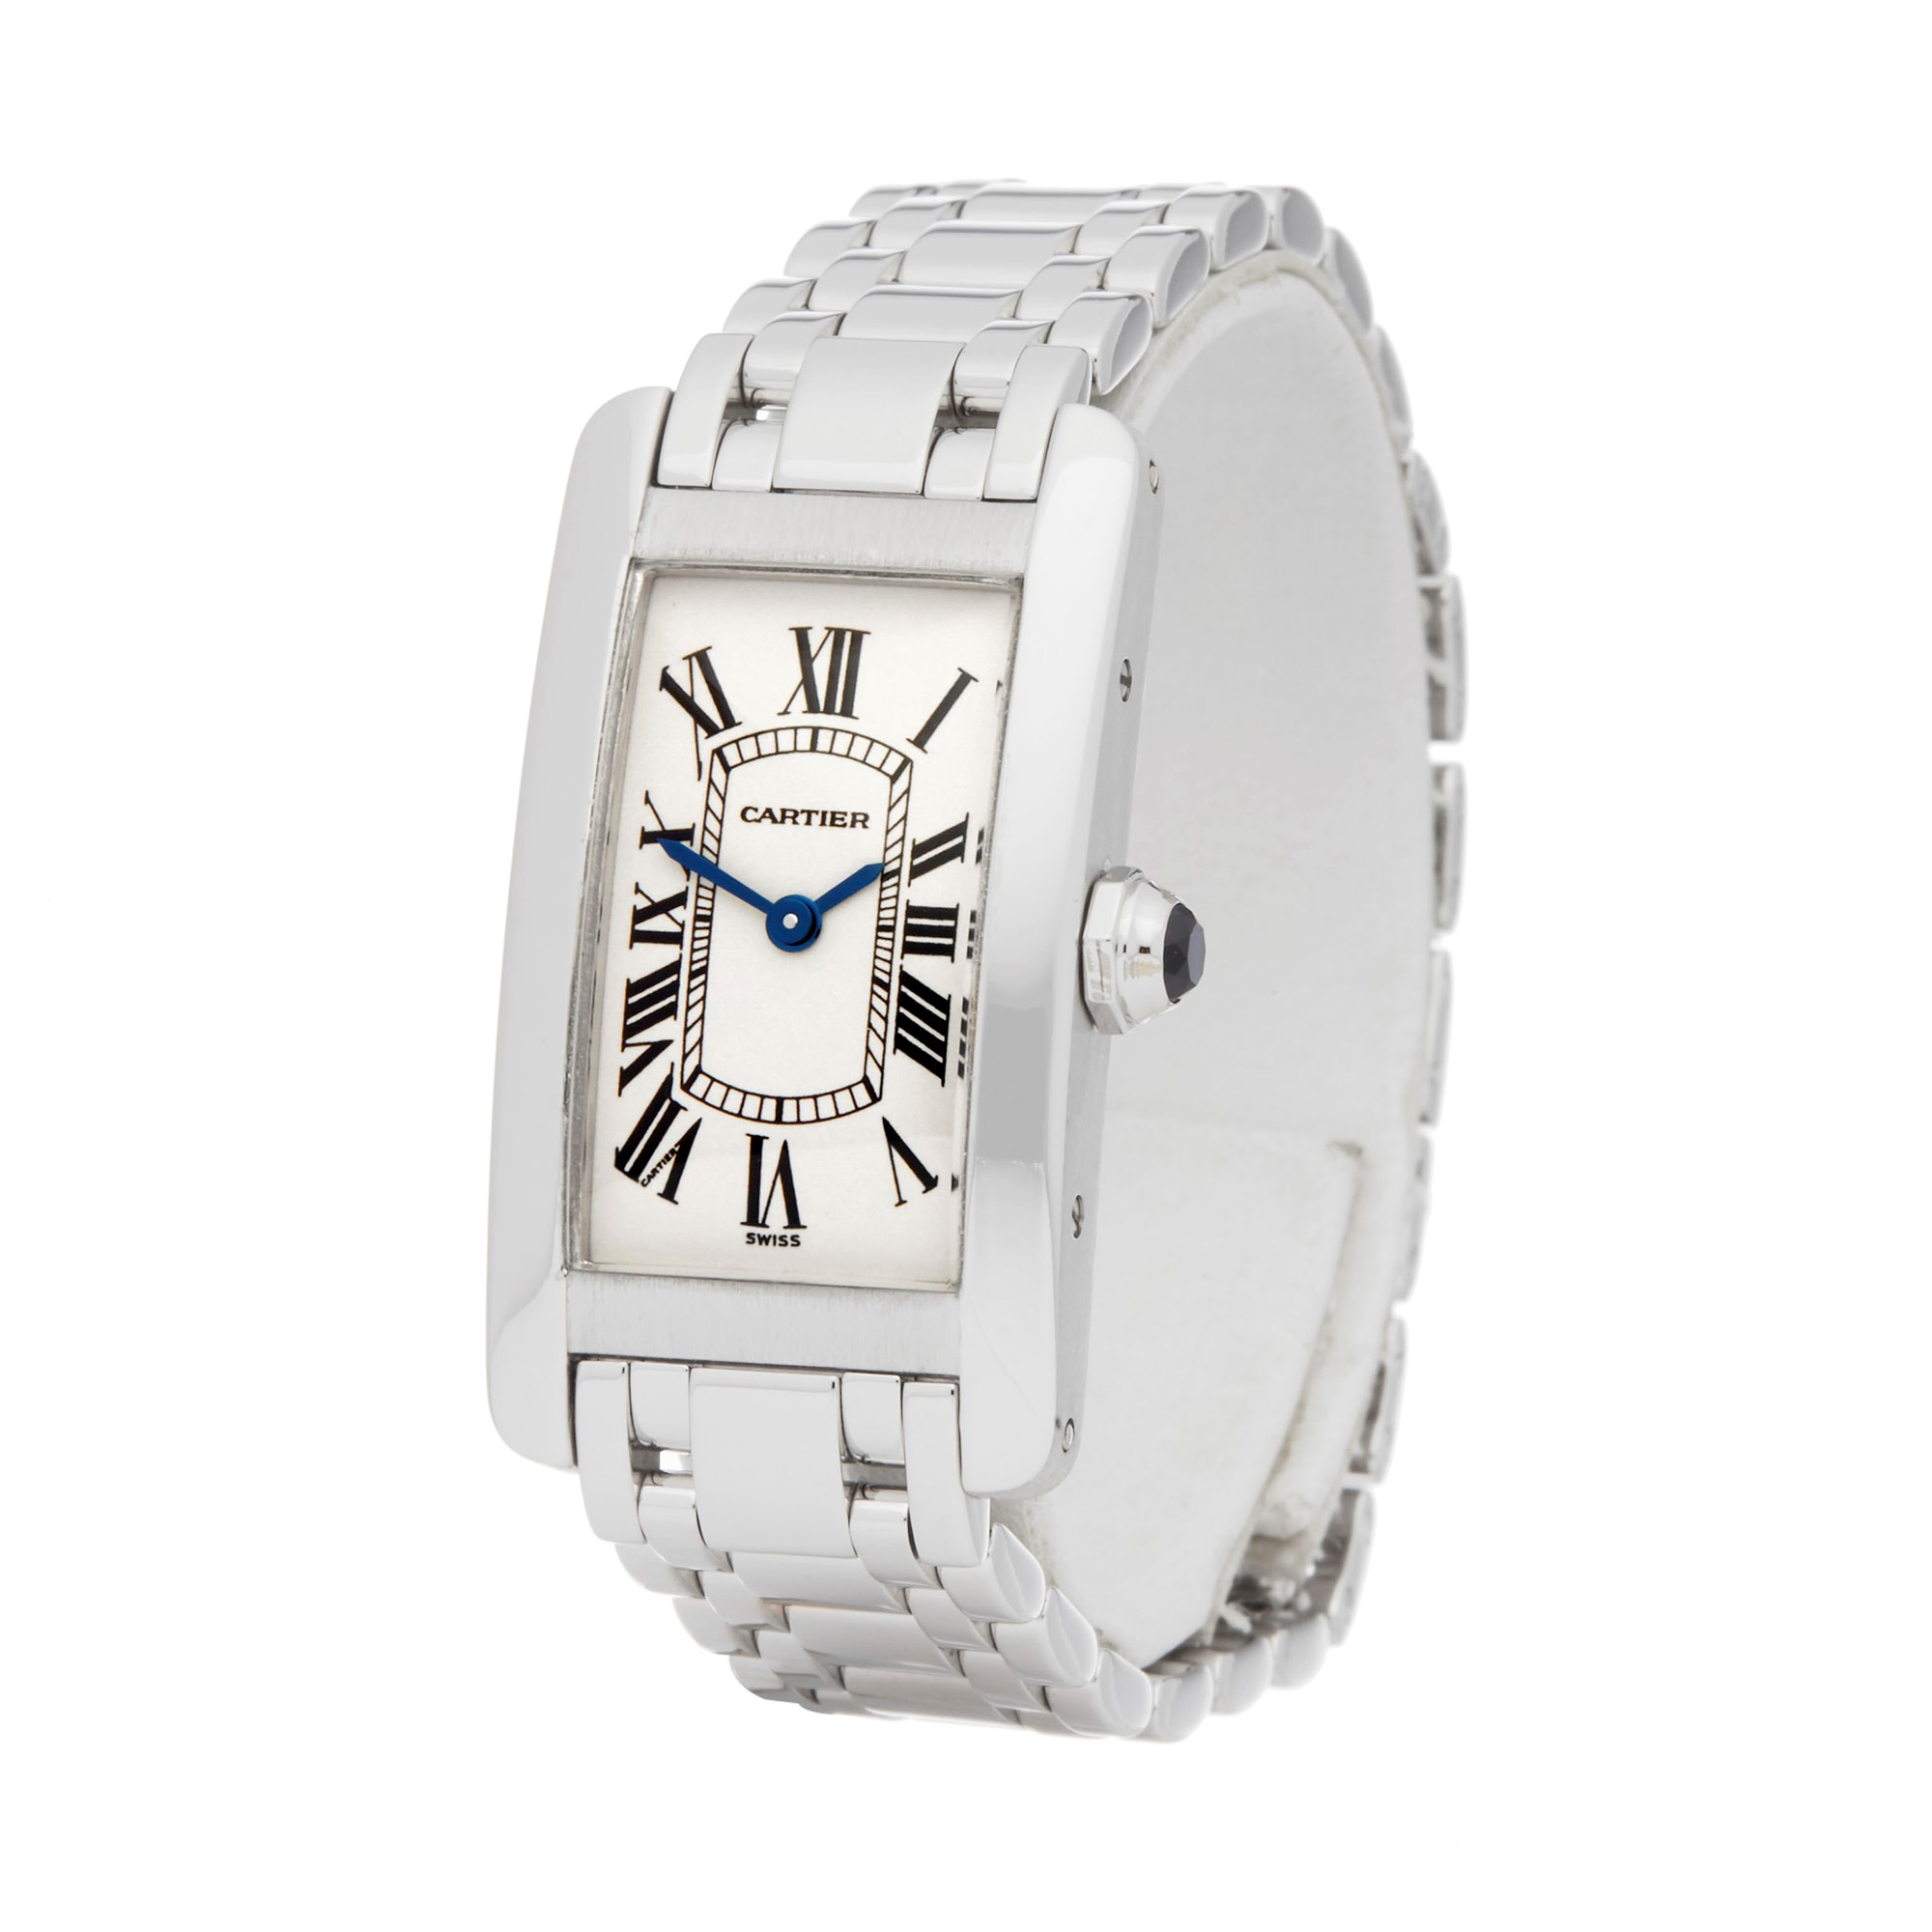 Cartier Tank Americaine White Gold W26019L1 or 1713